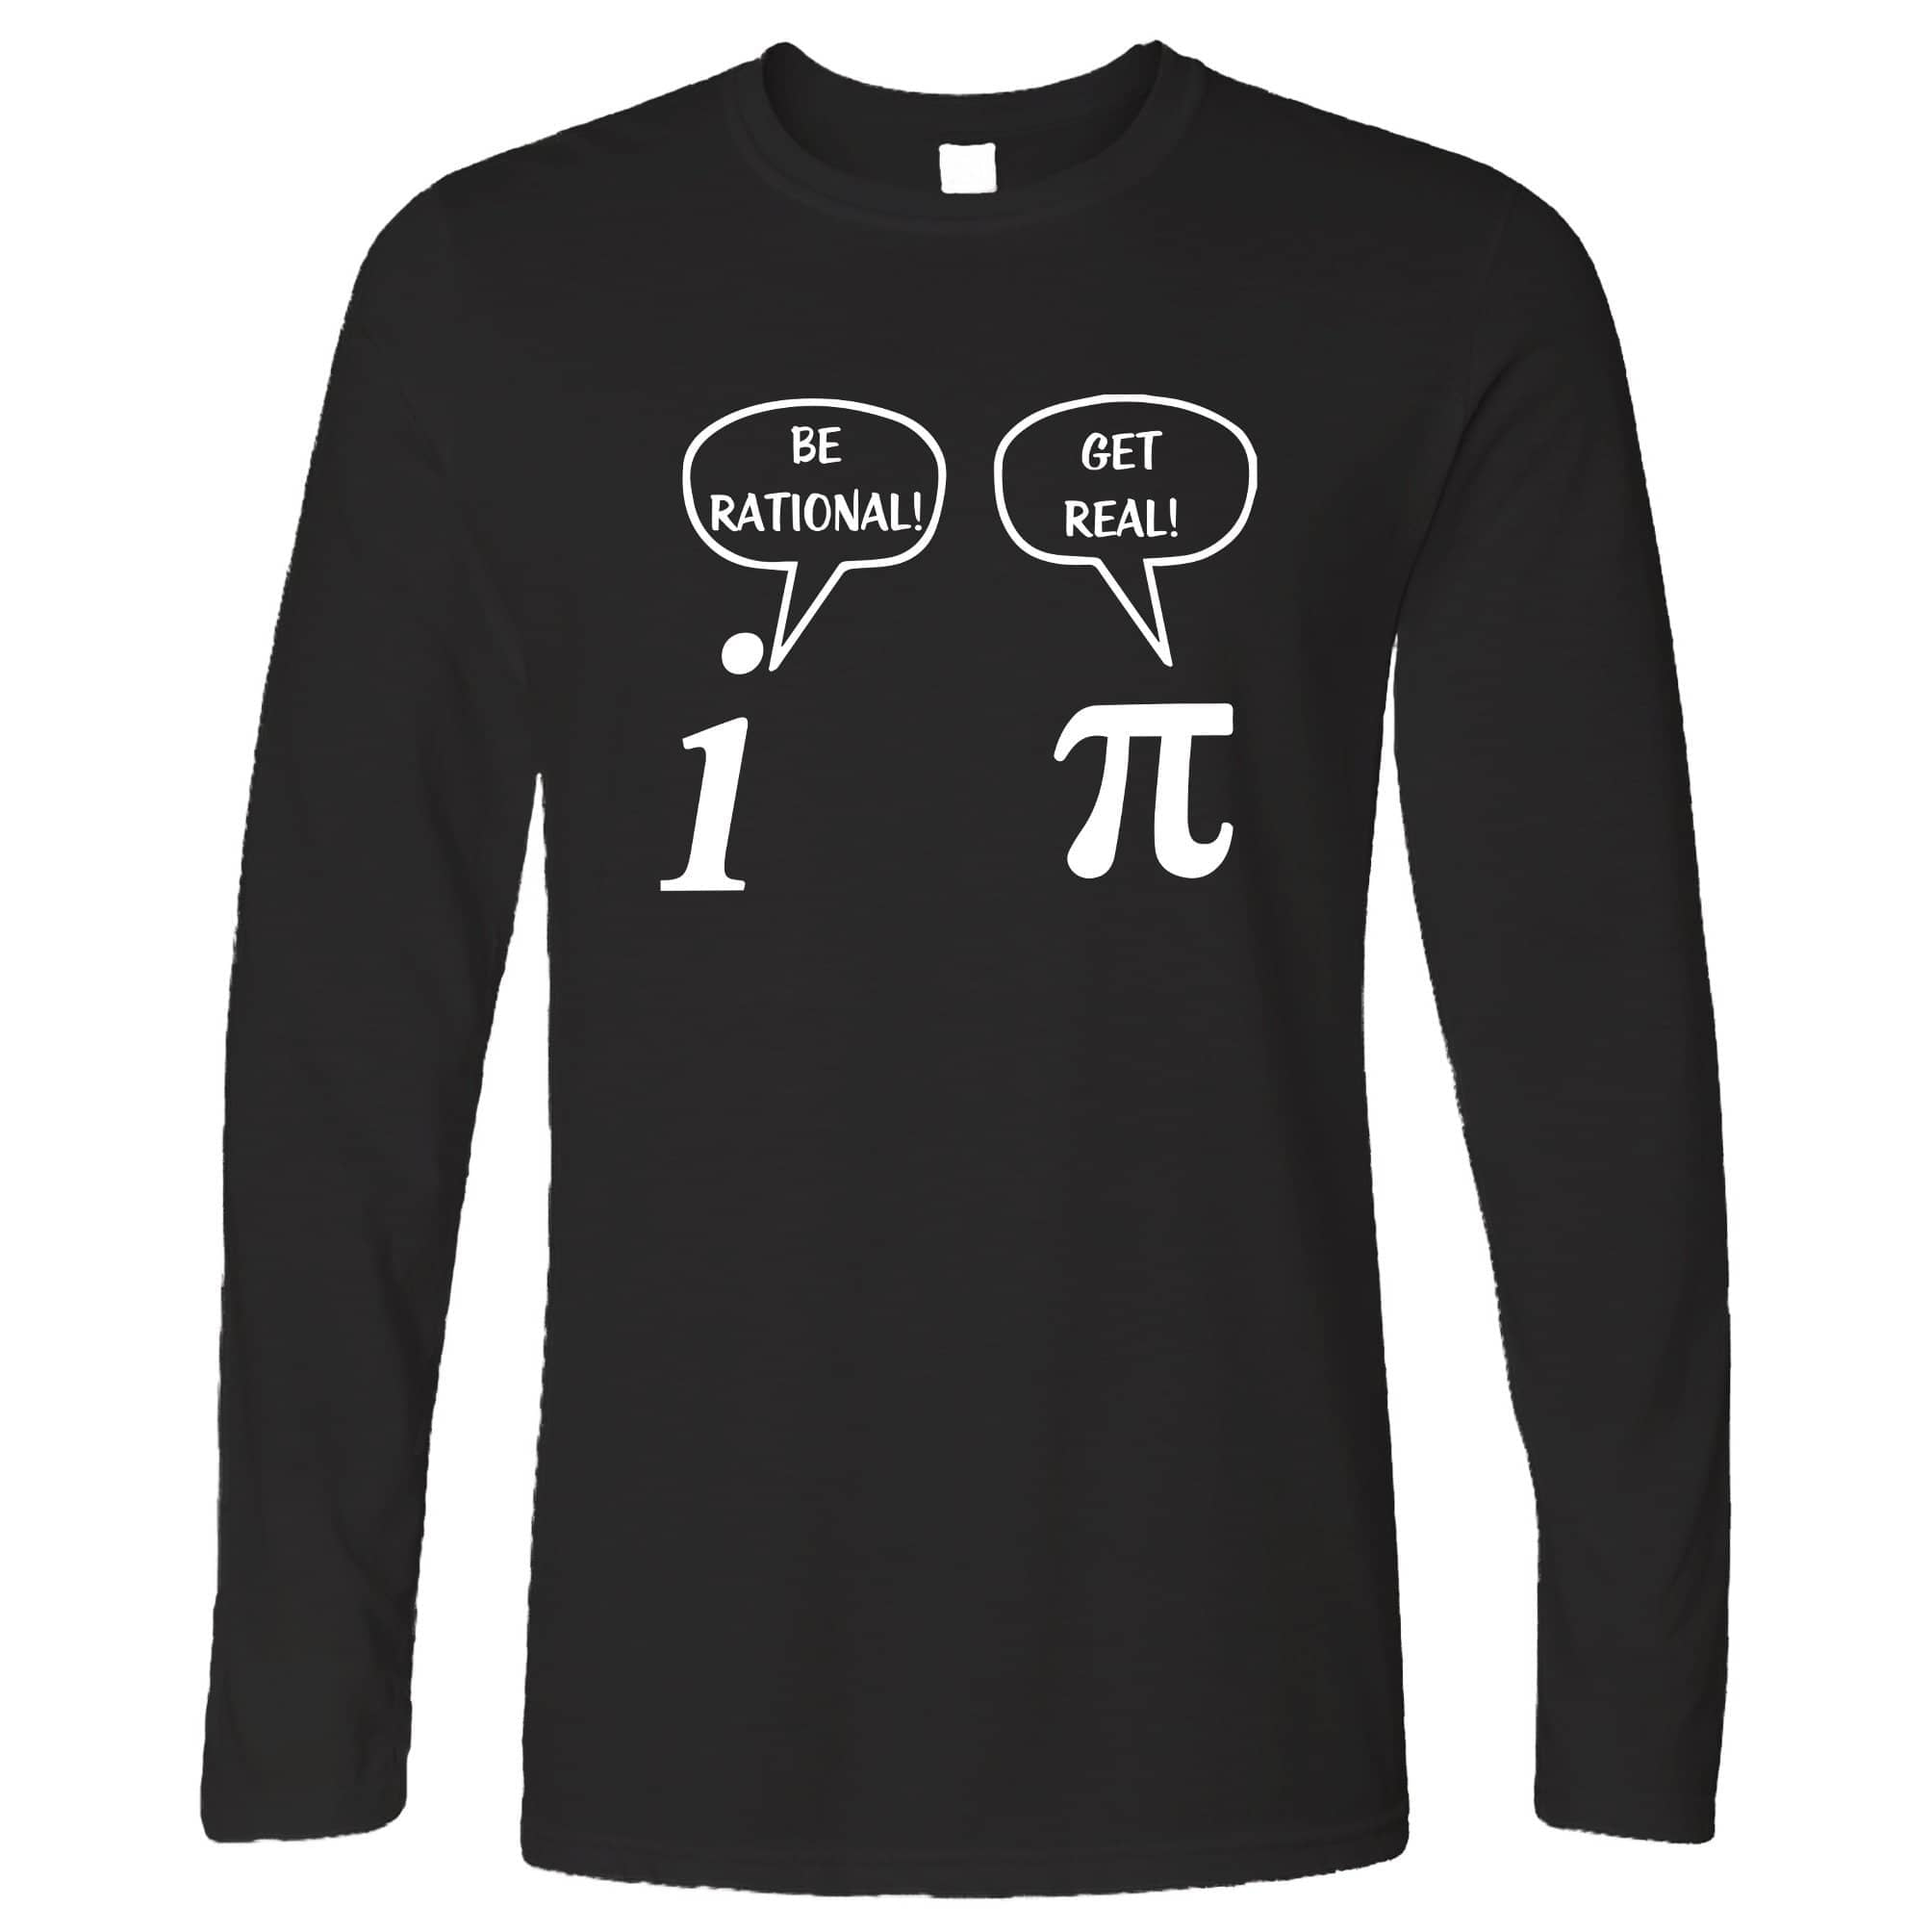 Novelty Math Long Sleeve Be Rational! Get Real! Argument T-Shirt